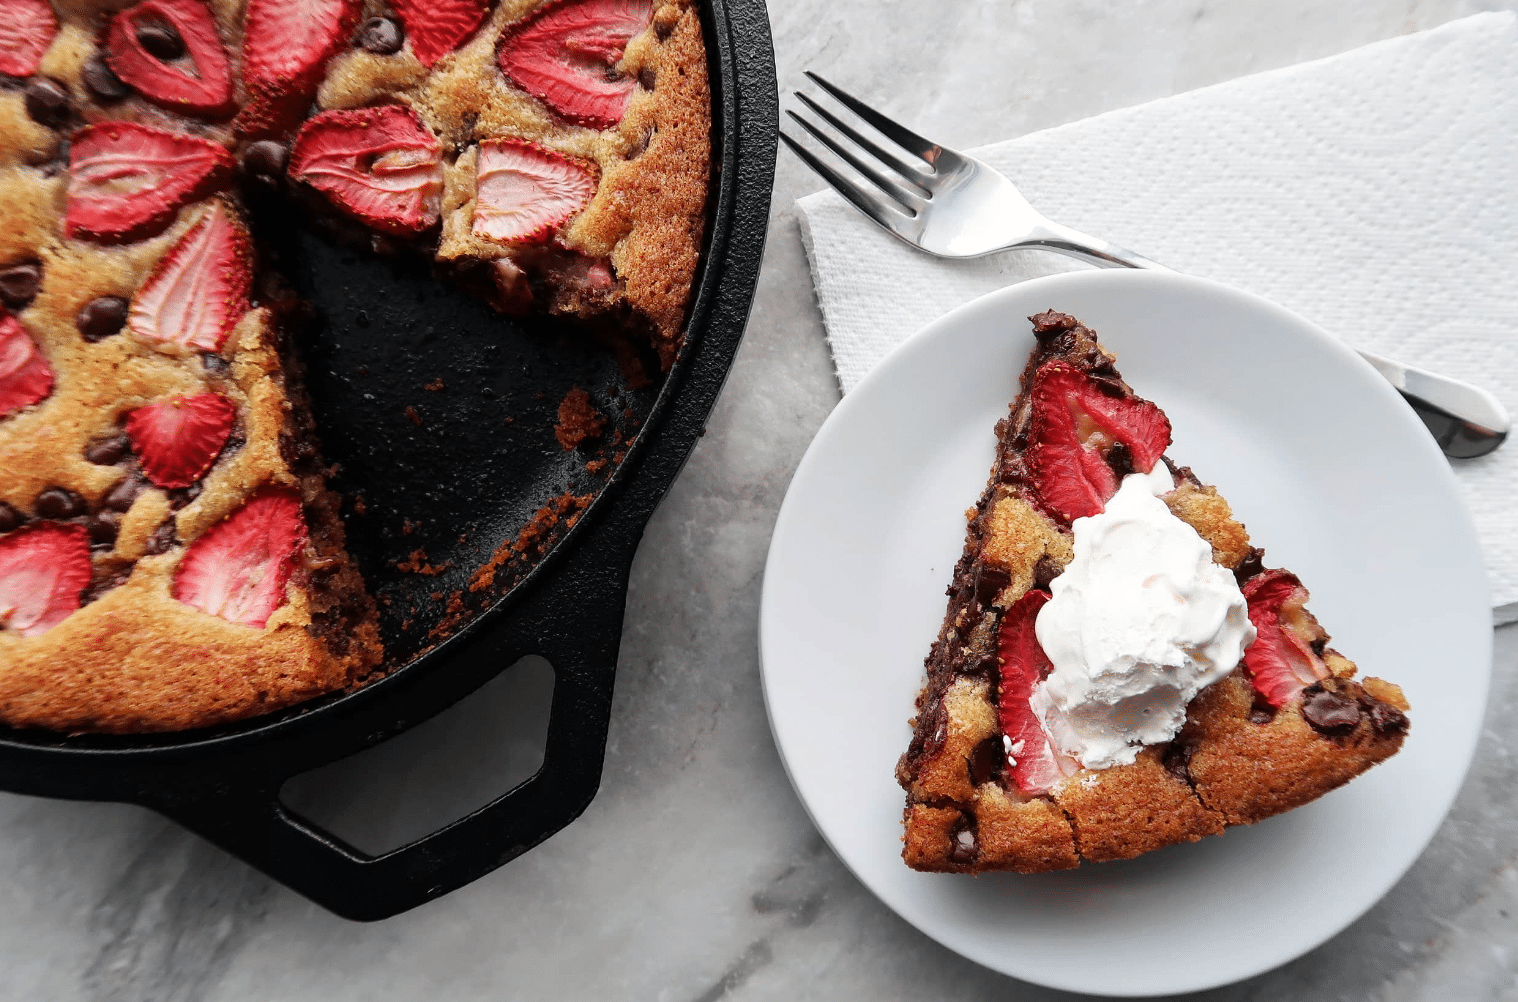 slice of chocolate chip strawberry skillet cookie on a plate next to cake in a skillet